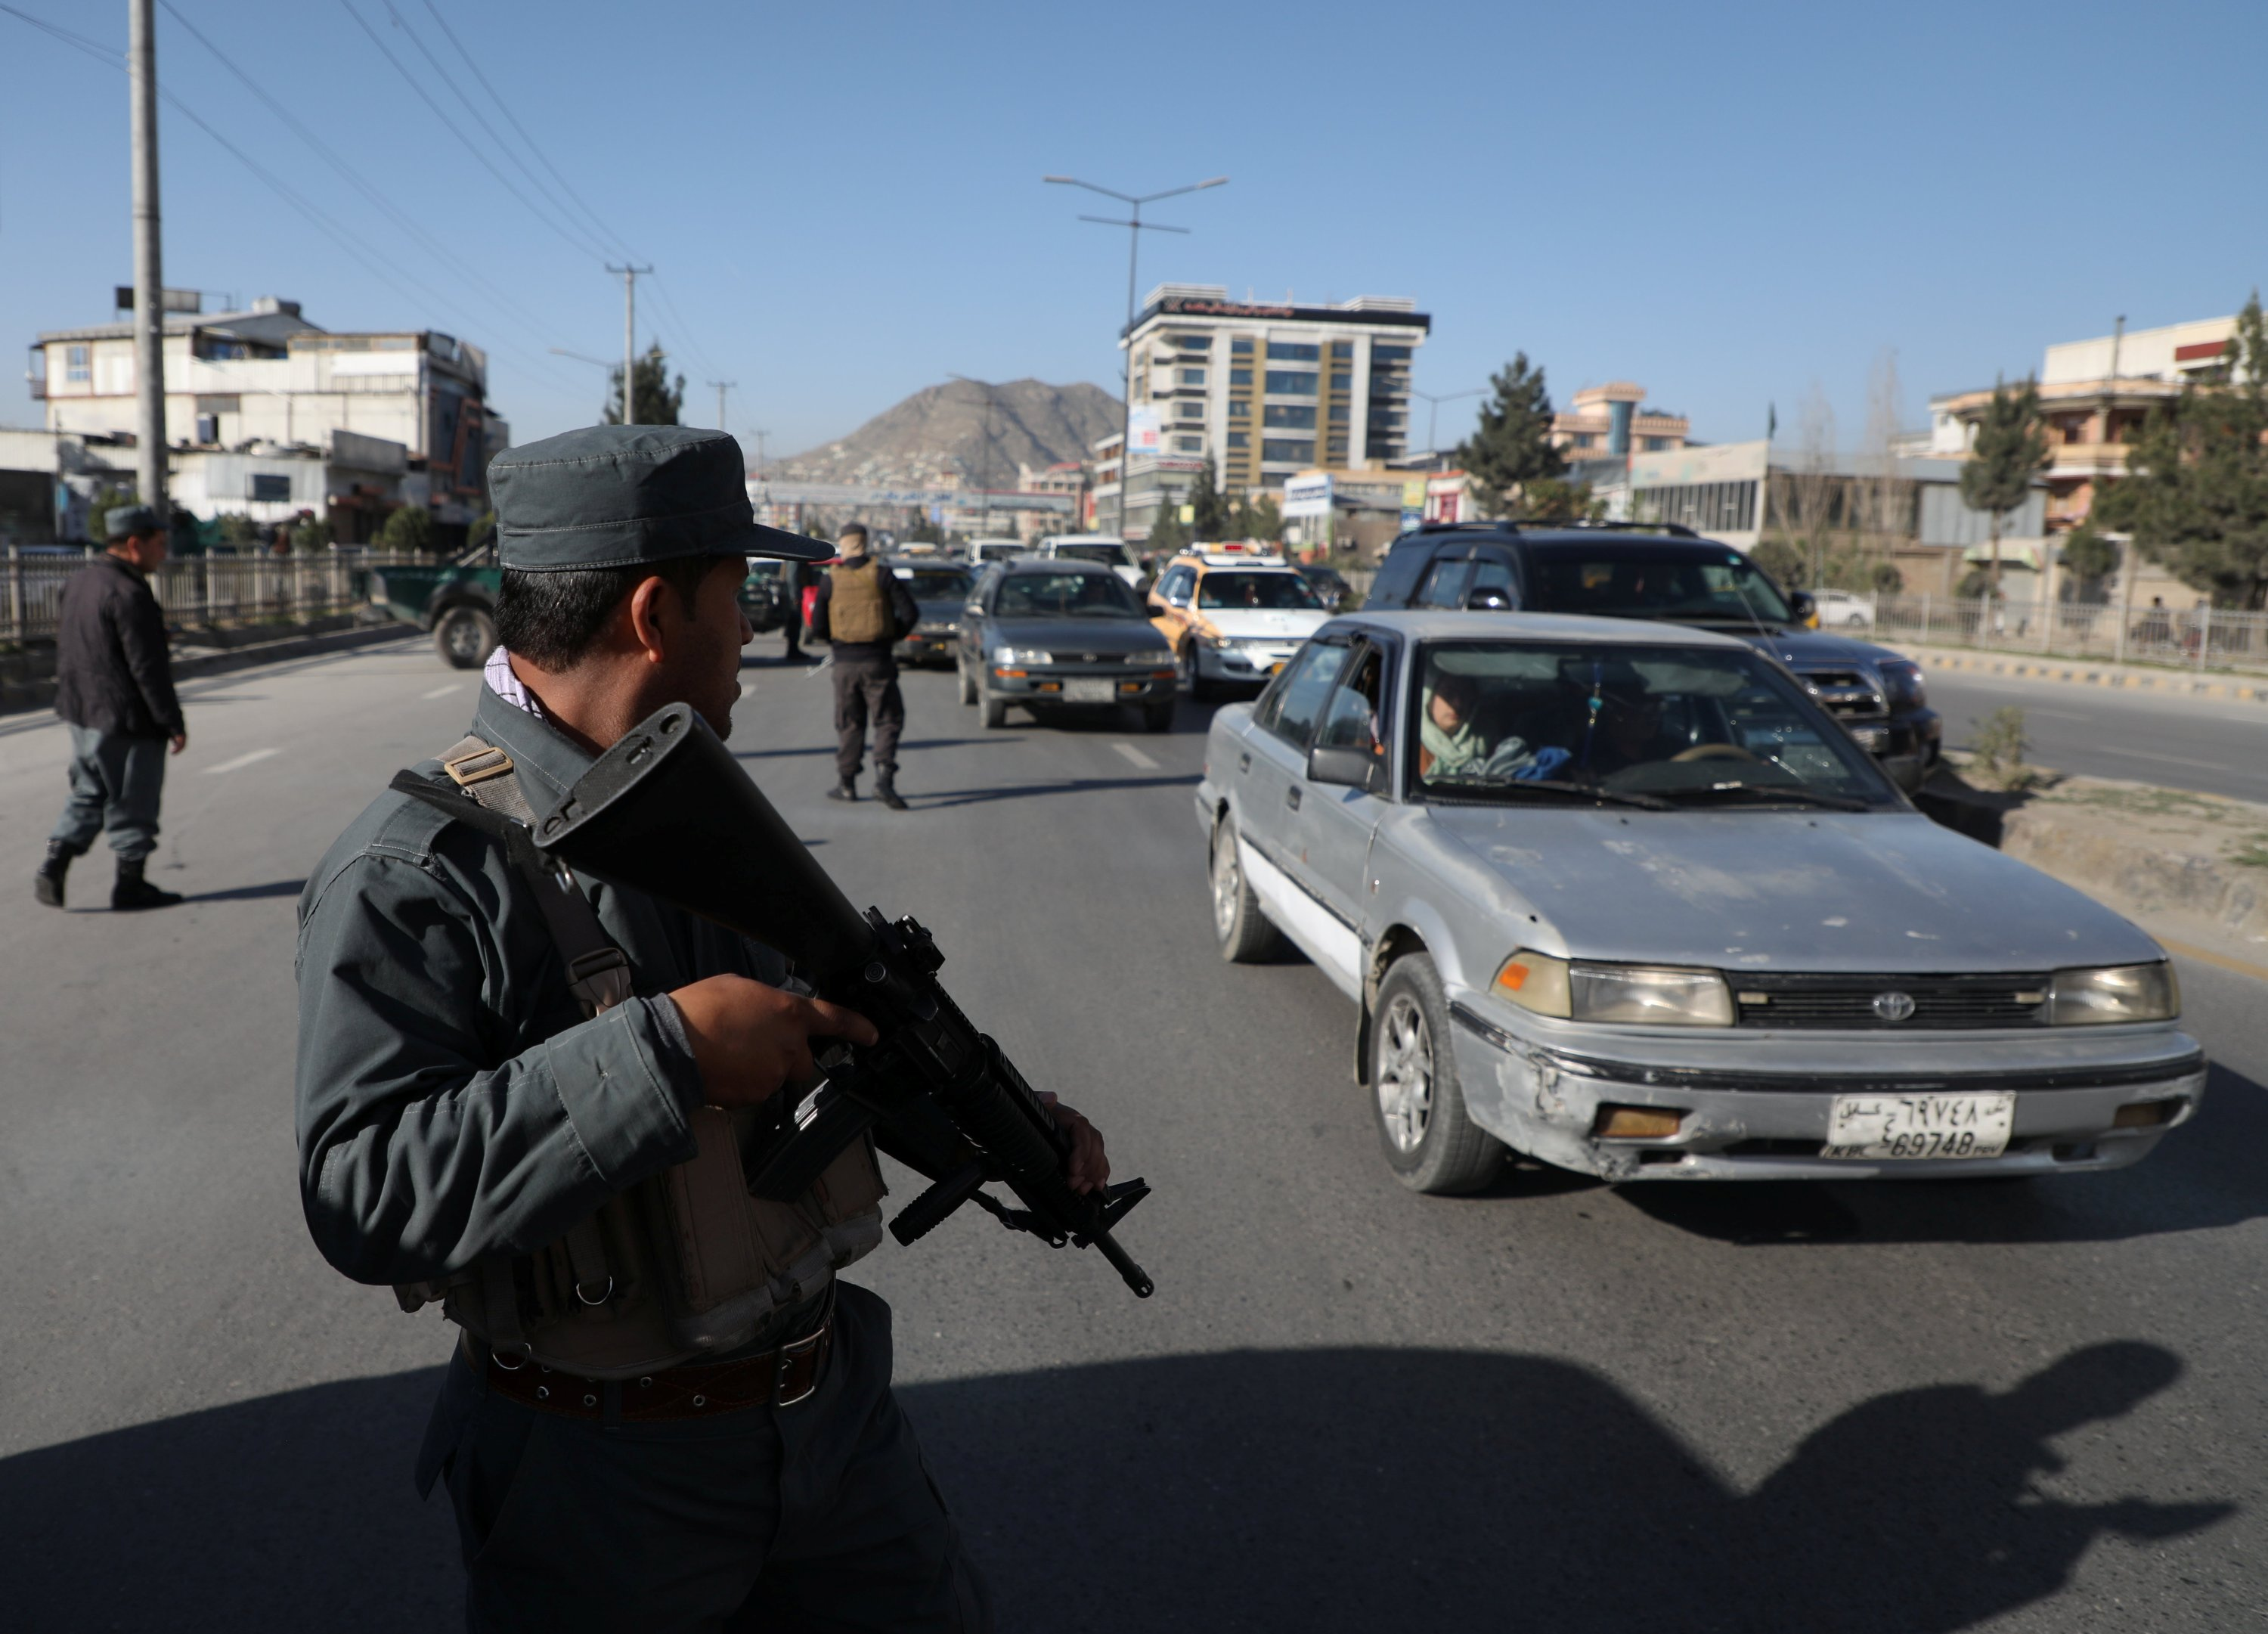 Afghan policemen keep watch at a checkpoint in Kabul, Afghanistan, April 19, 2021. (Reuters Photo)